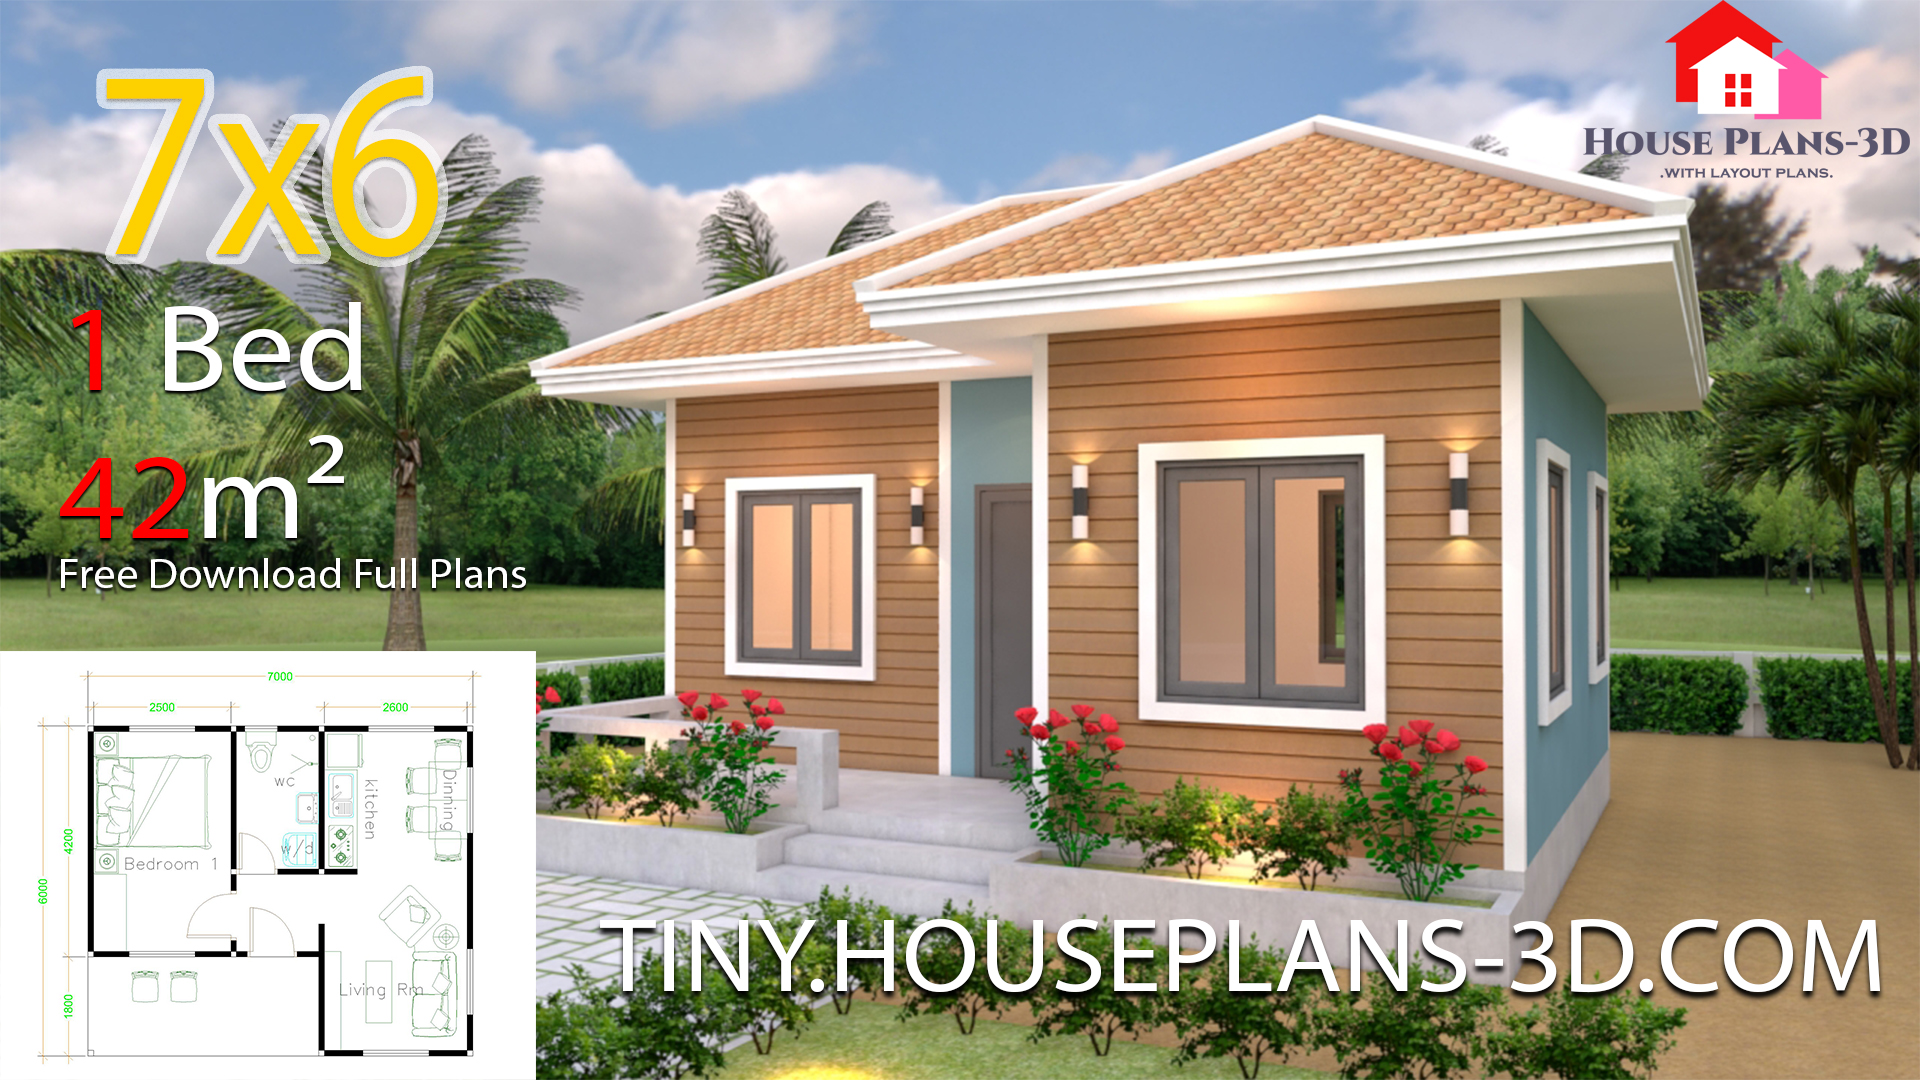 House Plans 7x6 With One Bedroom Hip Roof Samphoas Plan